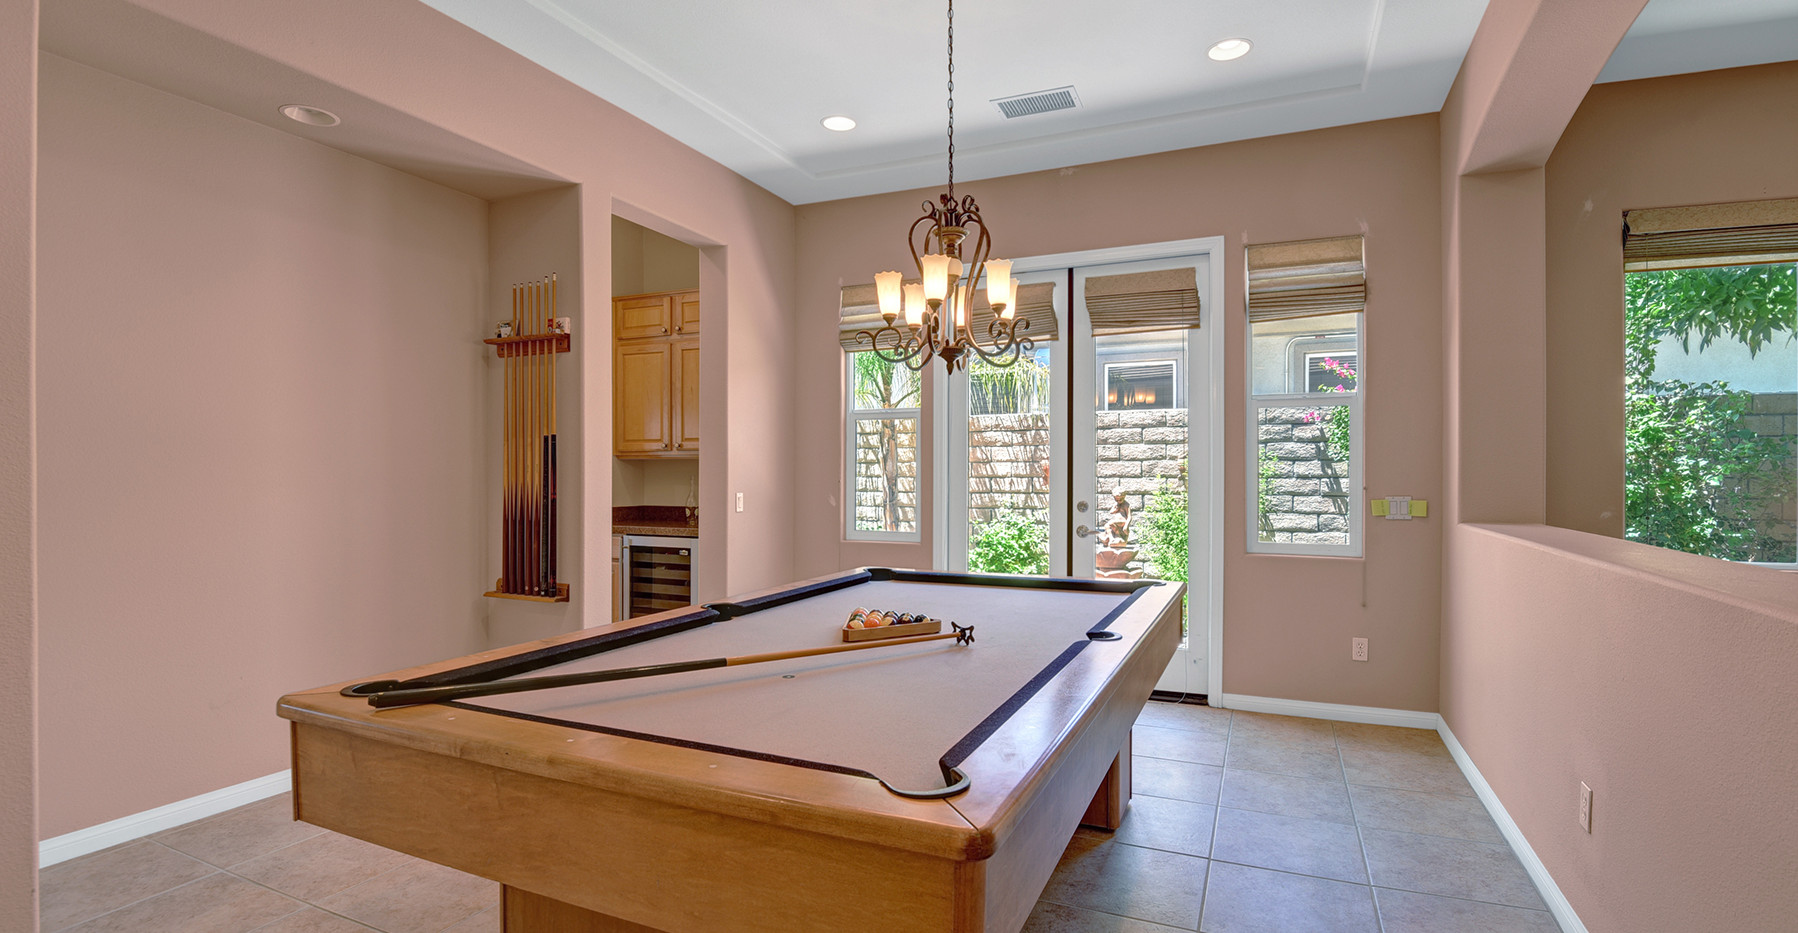 DINING ROOM SET UP WITH BILLARDS MLS.jpg